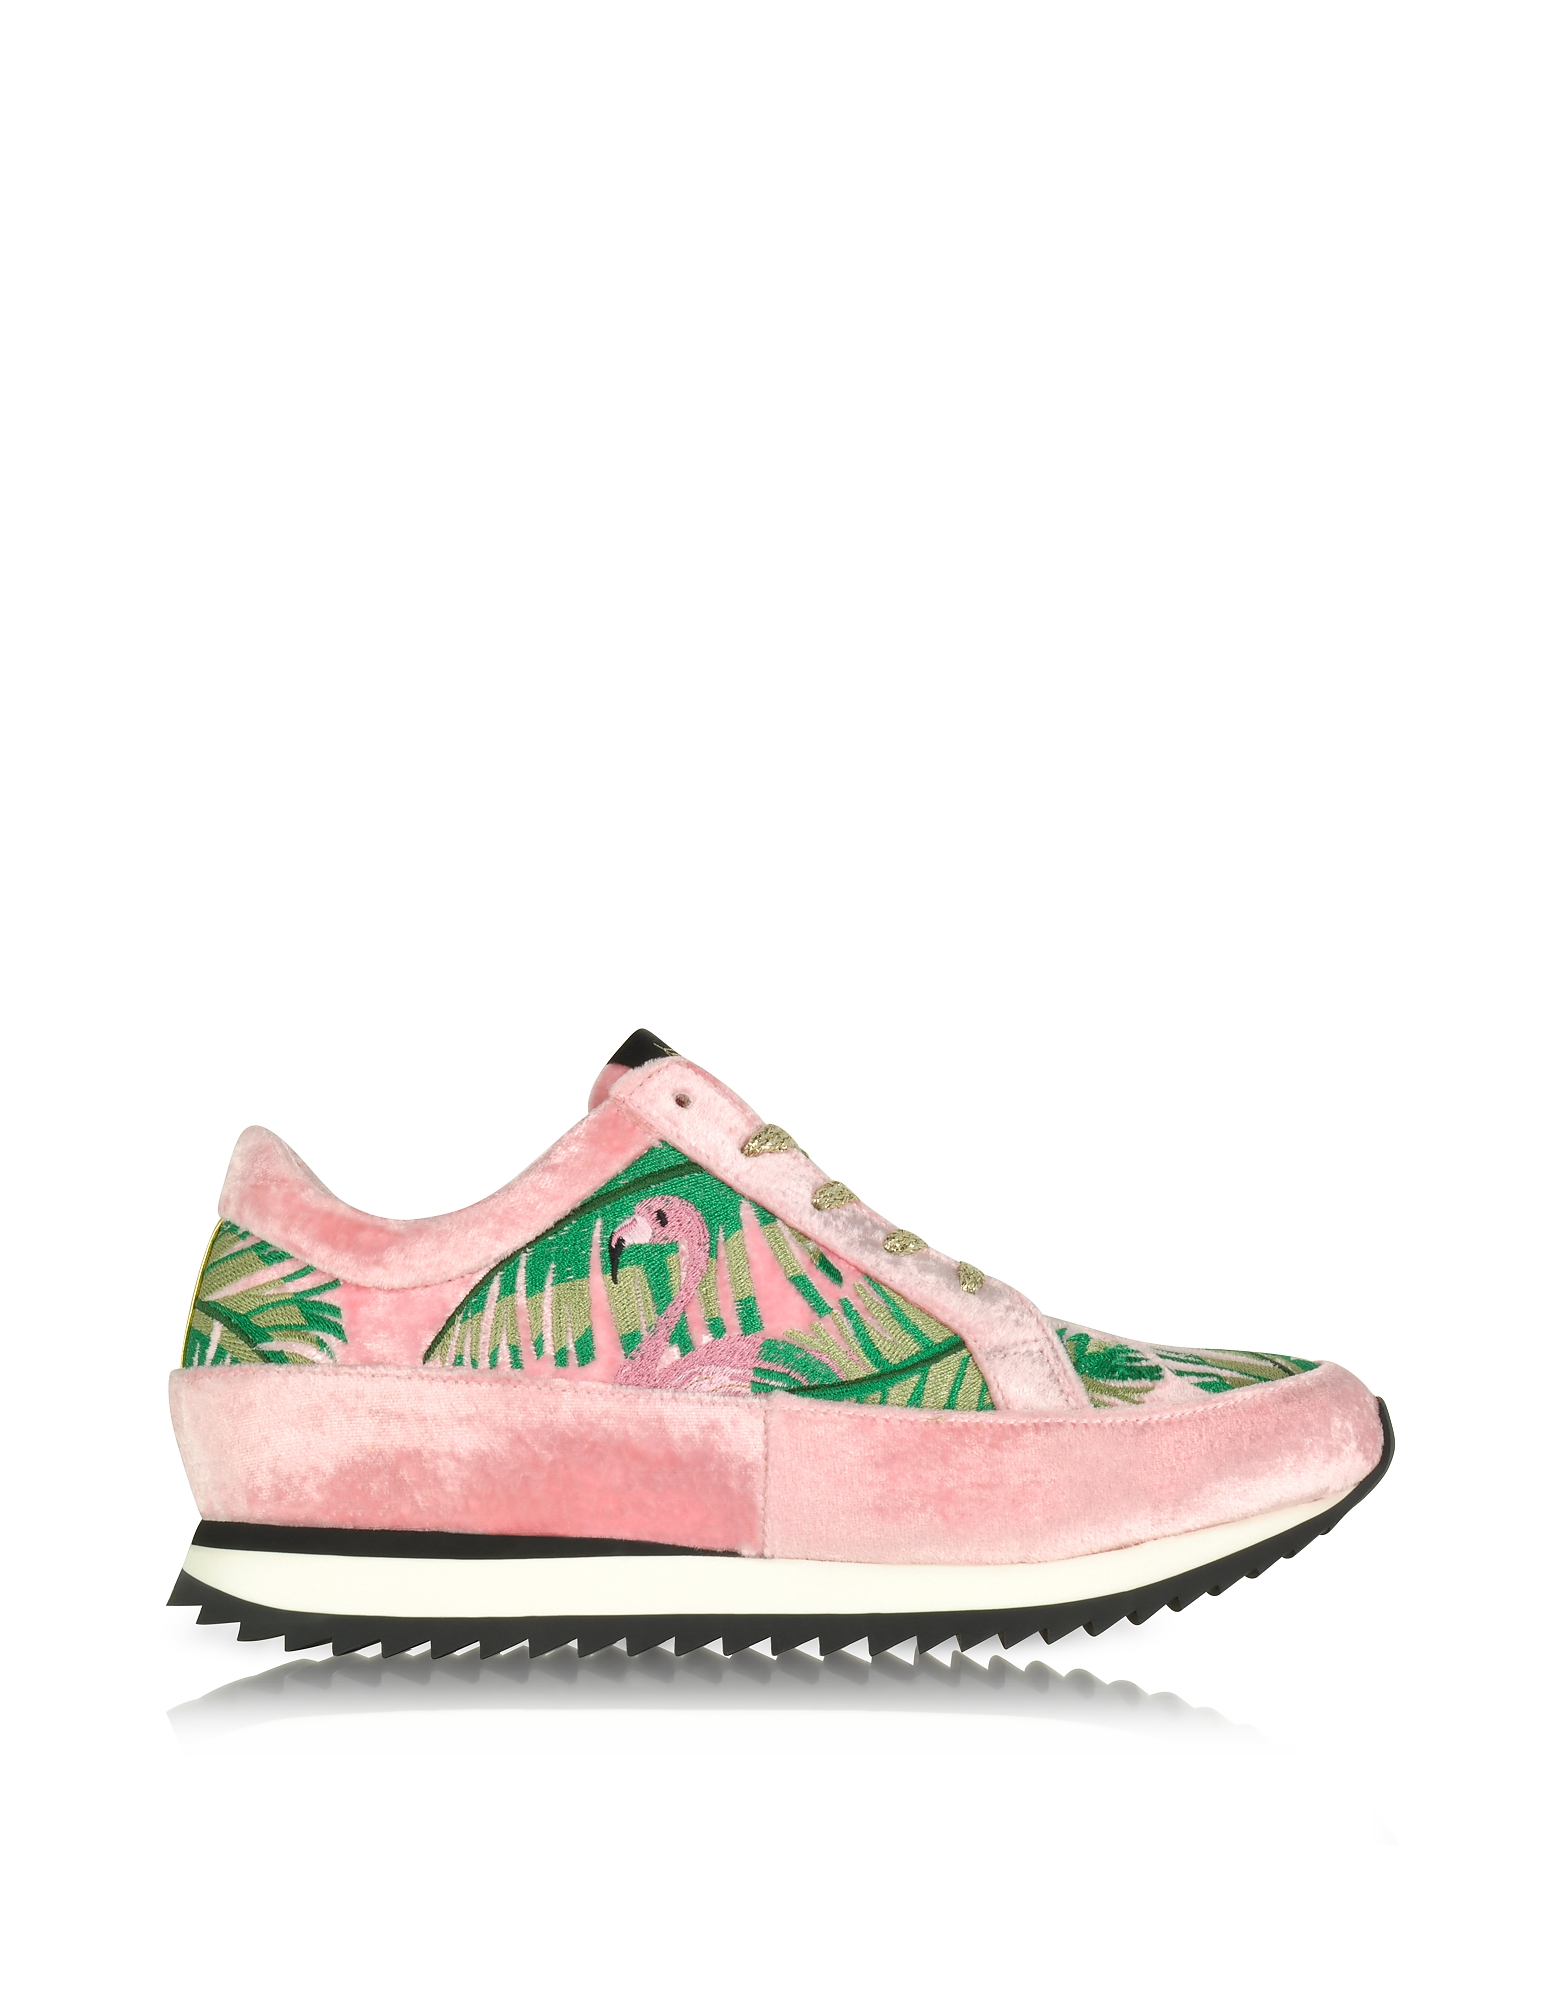 Charlotte Olympia Shoes, Work It Flamingo Pink Velvet Lace Up Sneakers